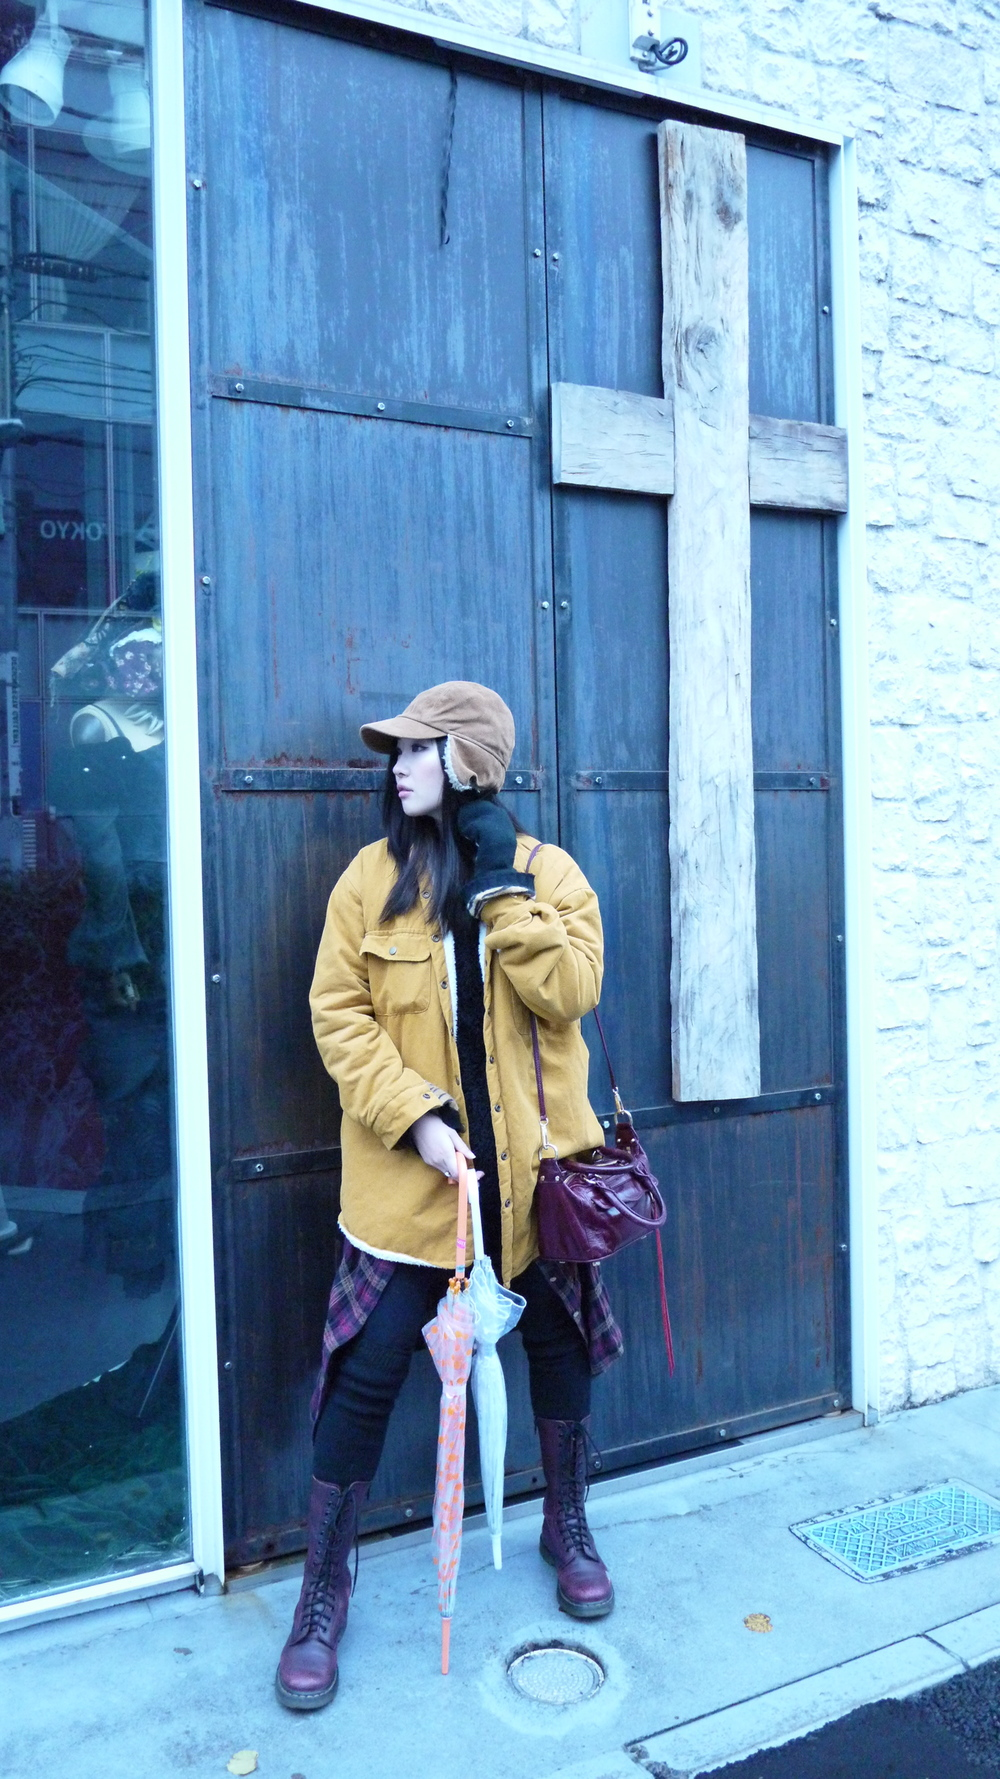 [ the elements : hat from Tokyo, jacket from Korea, Kaitlyn flannel,  Monki  quilted shorts and gloves, Rebecca Minkoff Darcy satchel, tights & thigh highs from Korea, Dr. Martens from  Solestruck ]